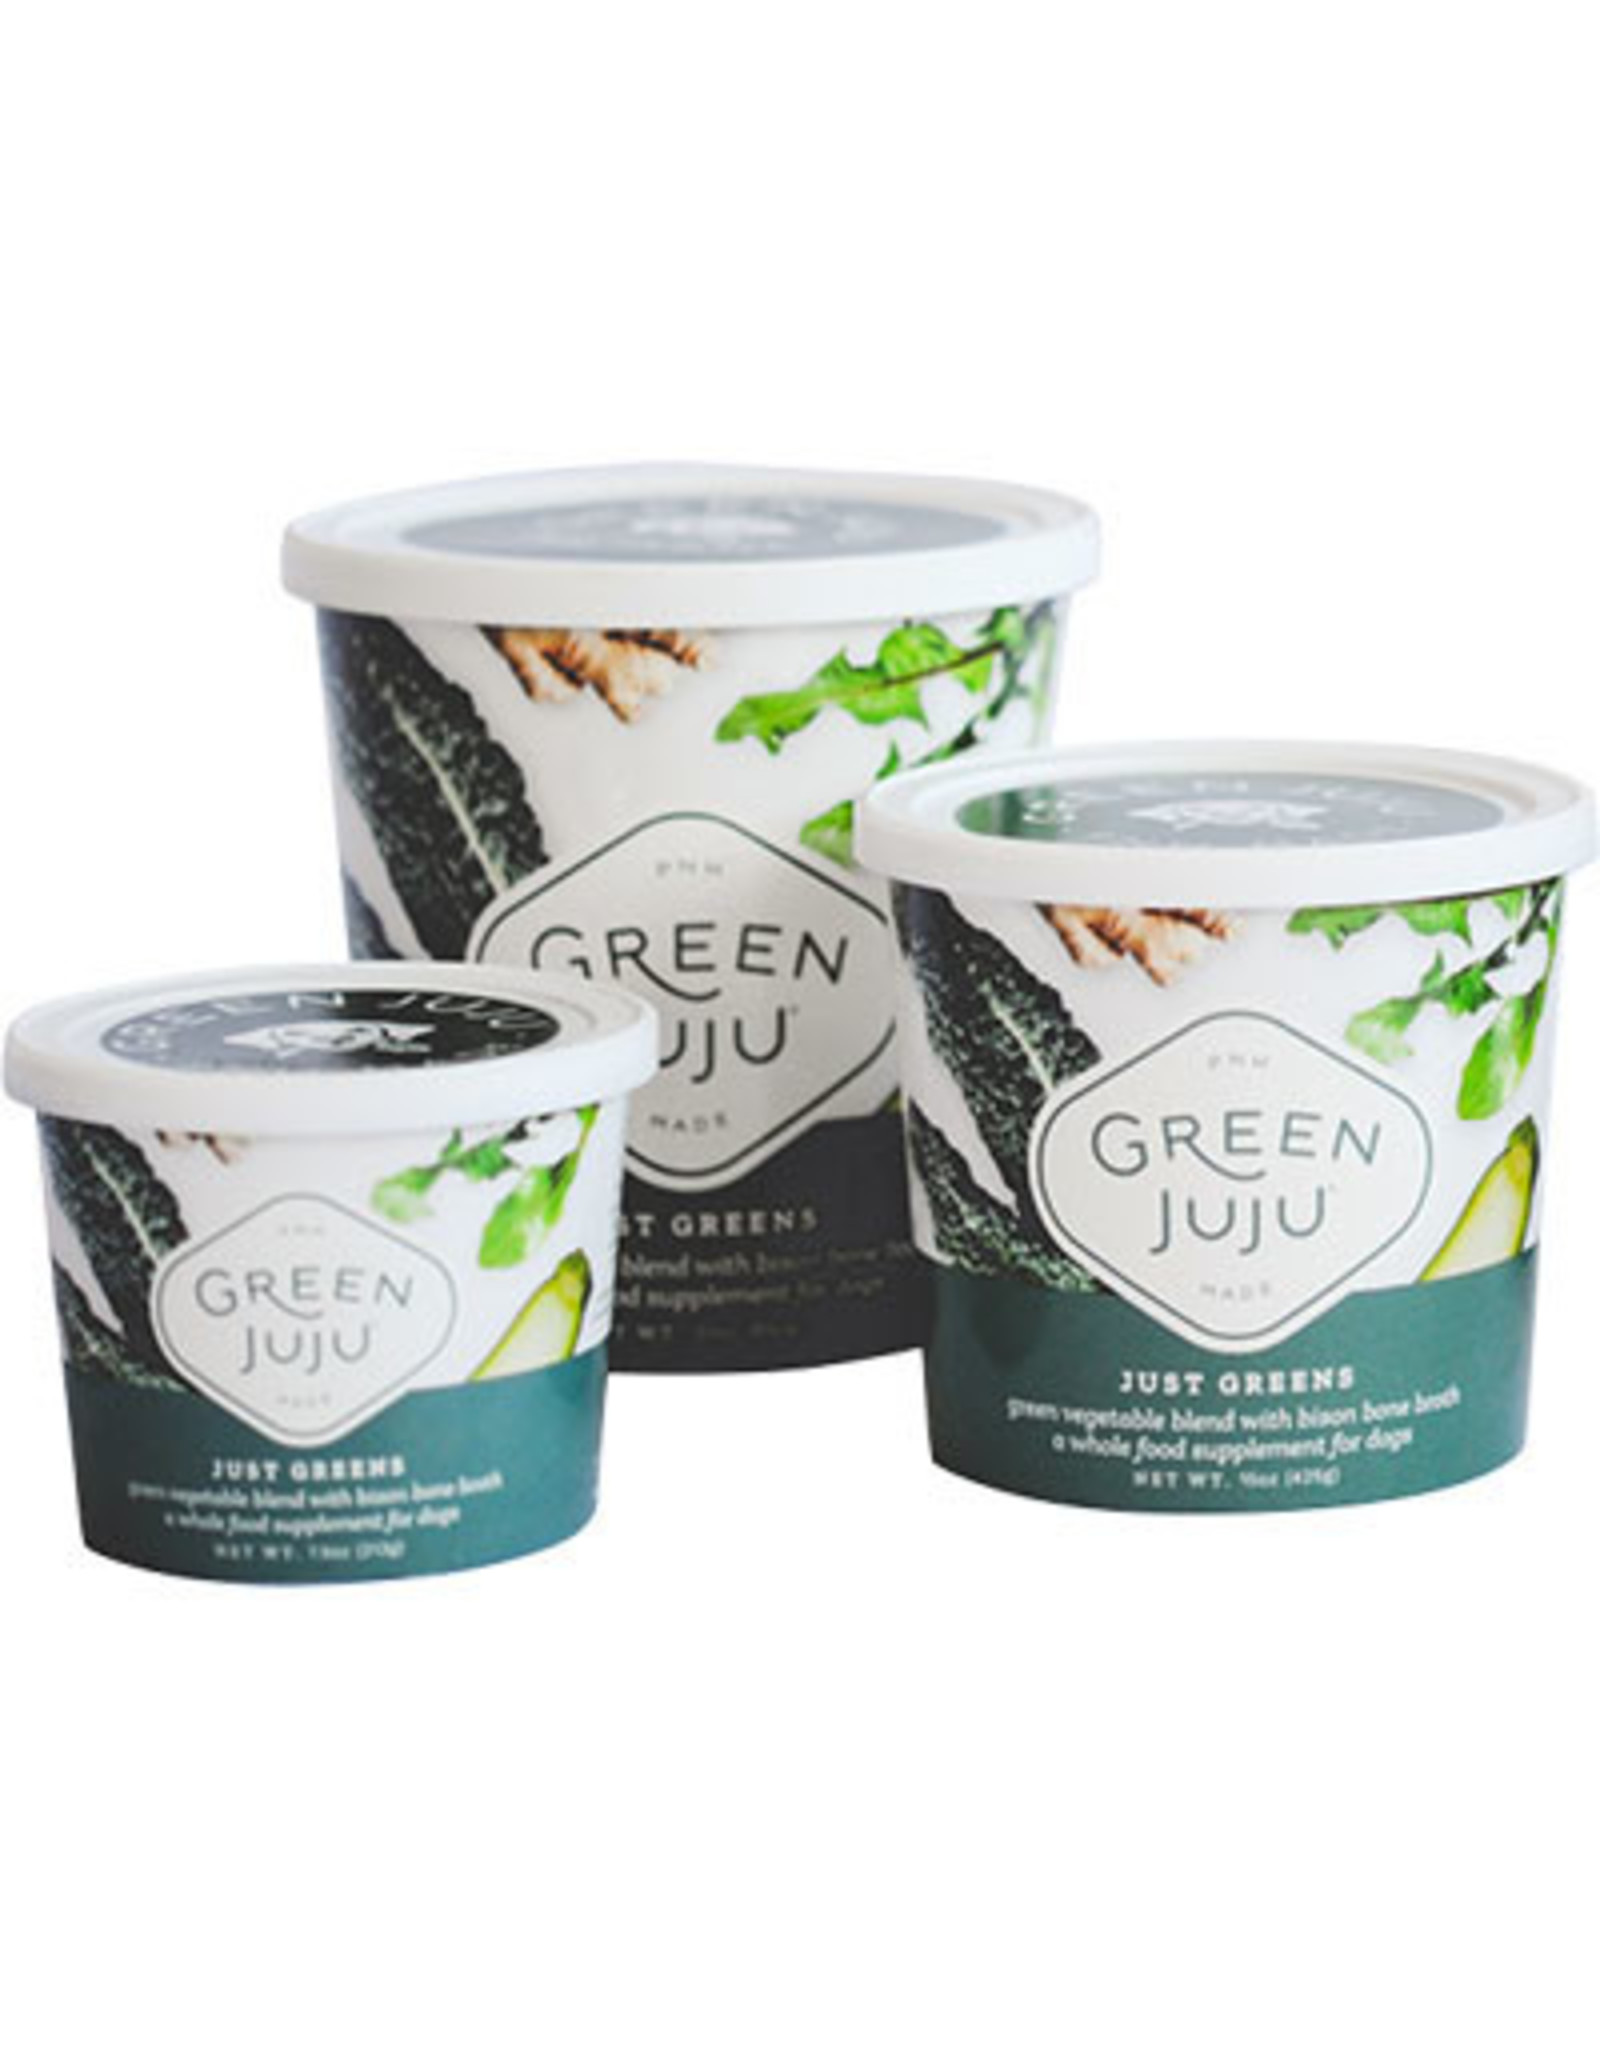 Green Juju Kitchen GREEN JUJU DOG JUST GREENS WITH BISON BONE BROTH